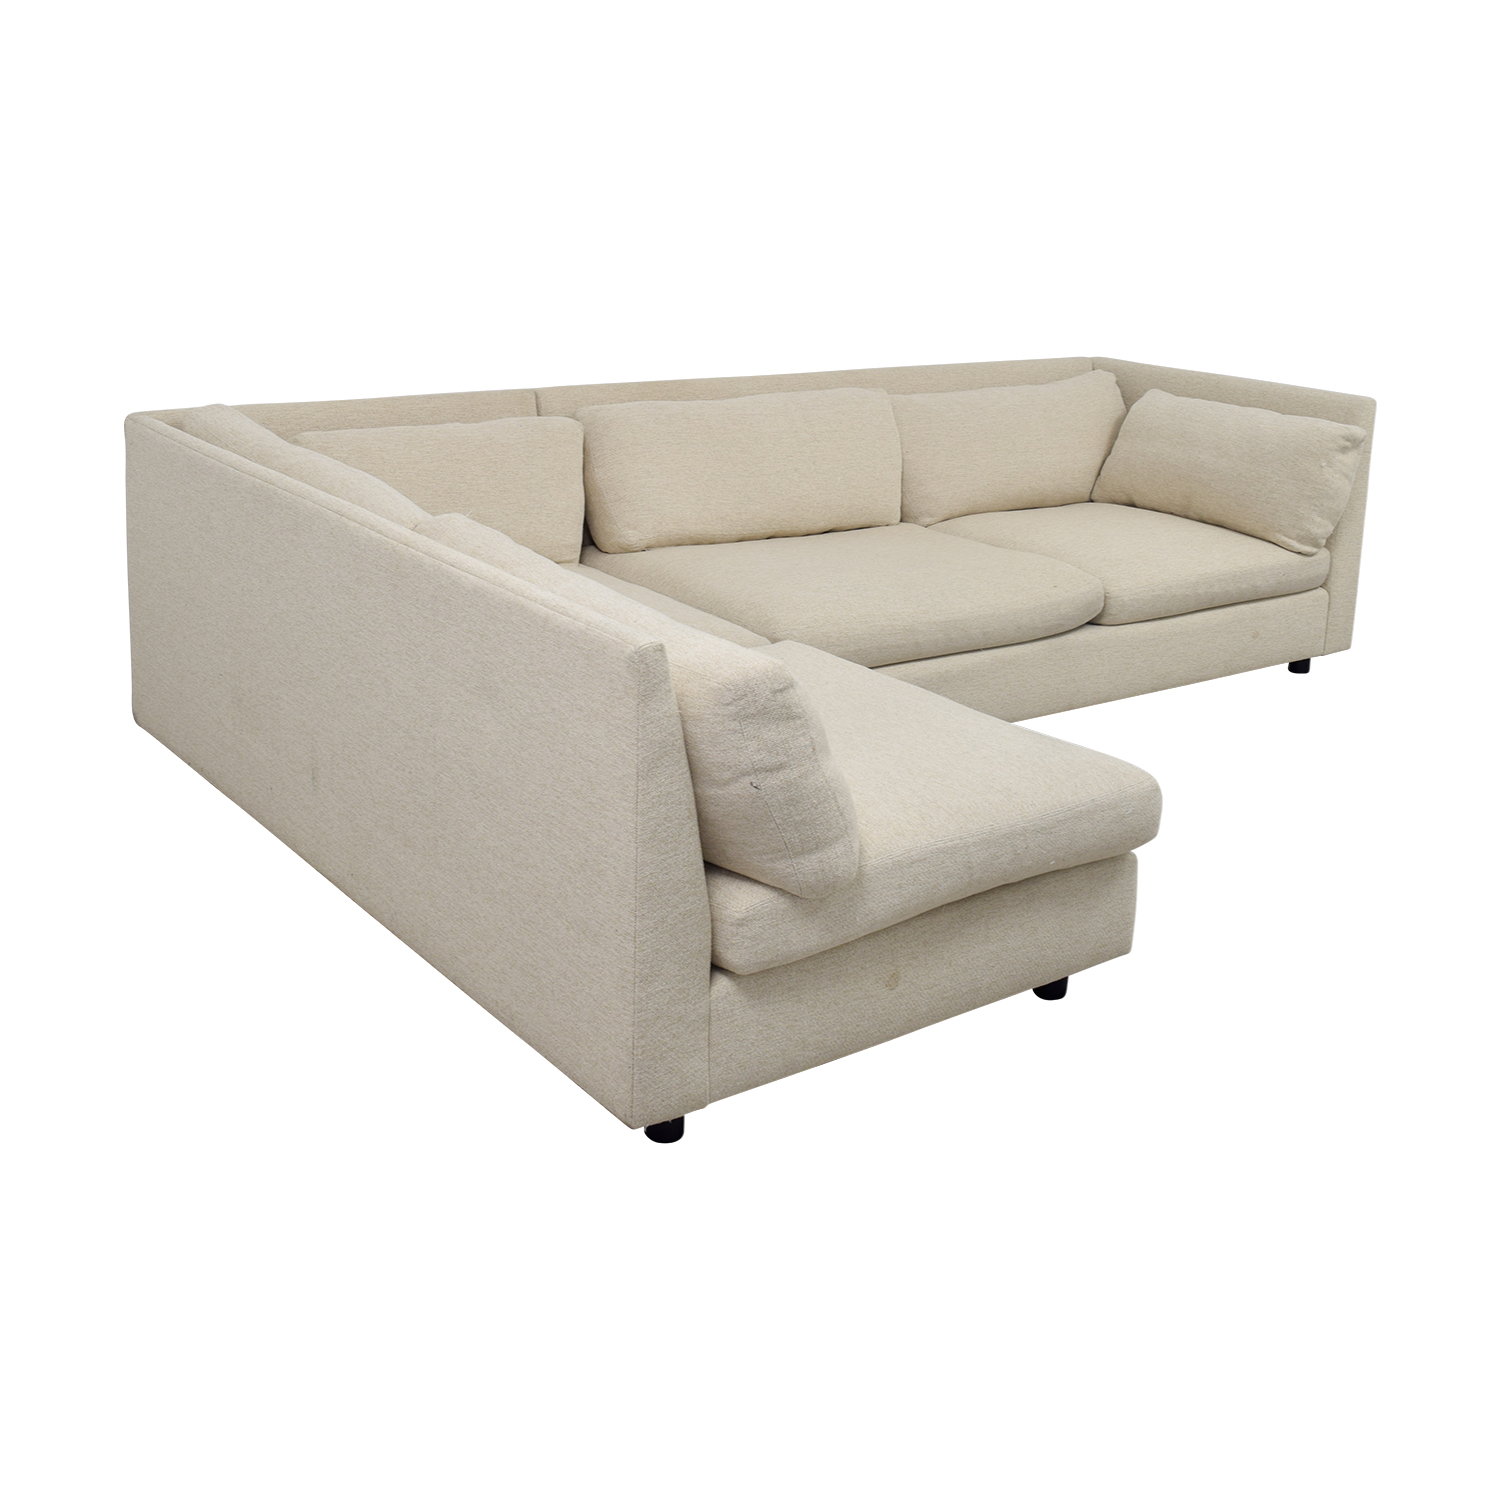 Mitchell Gold + Bob Williams Mitchell Gold + Bob Williams Beige L-Shaped Sectional nyc